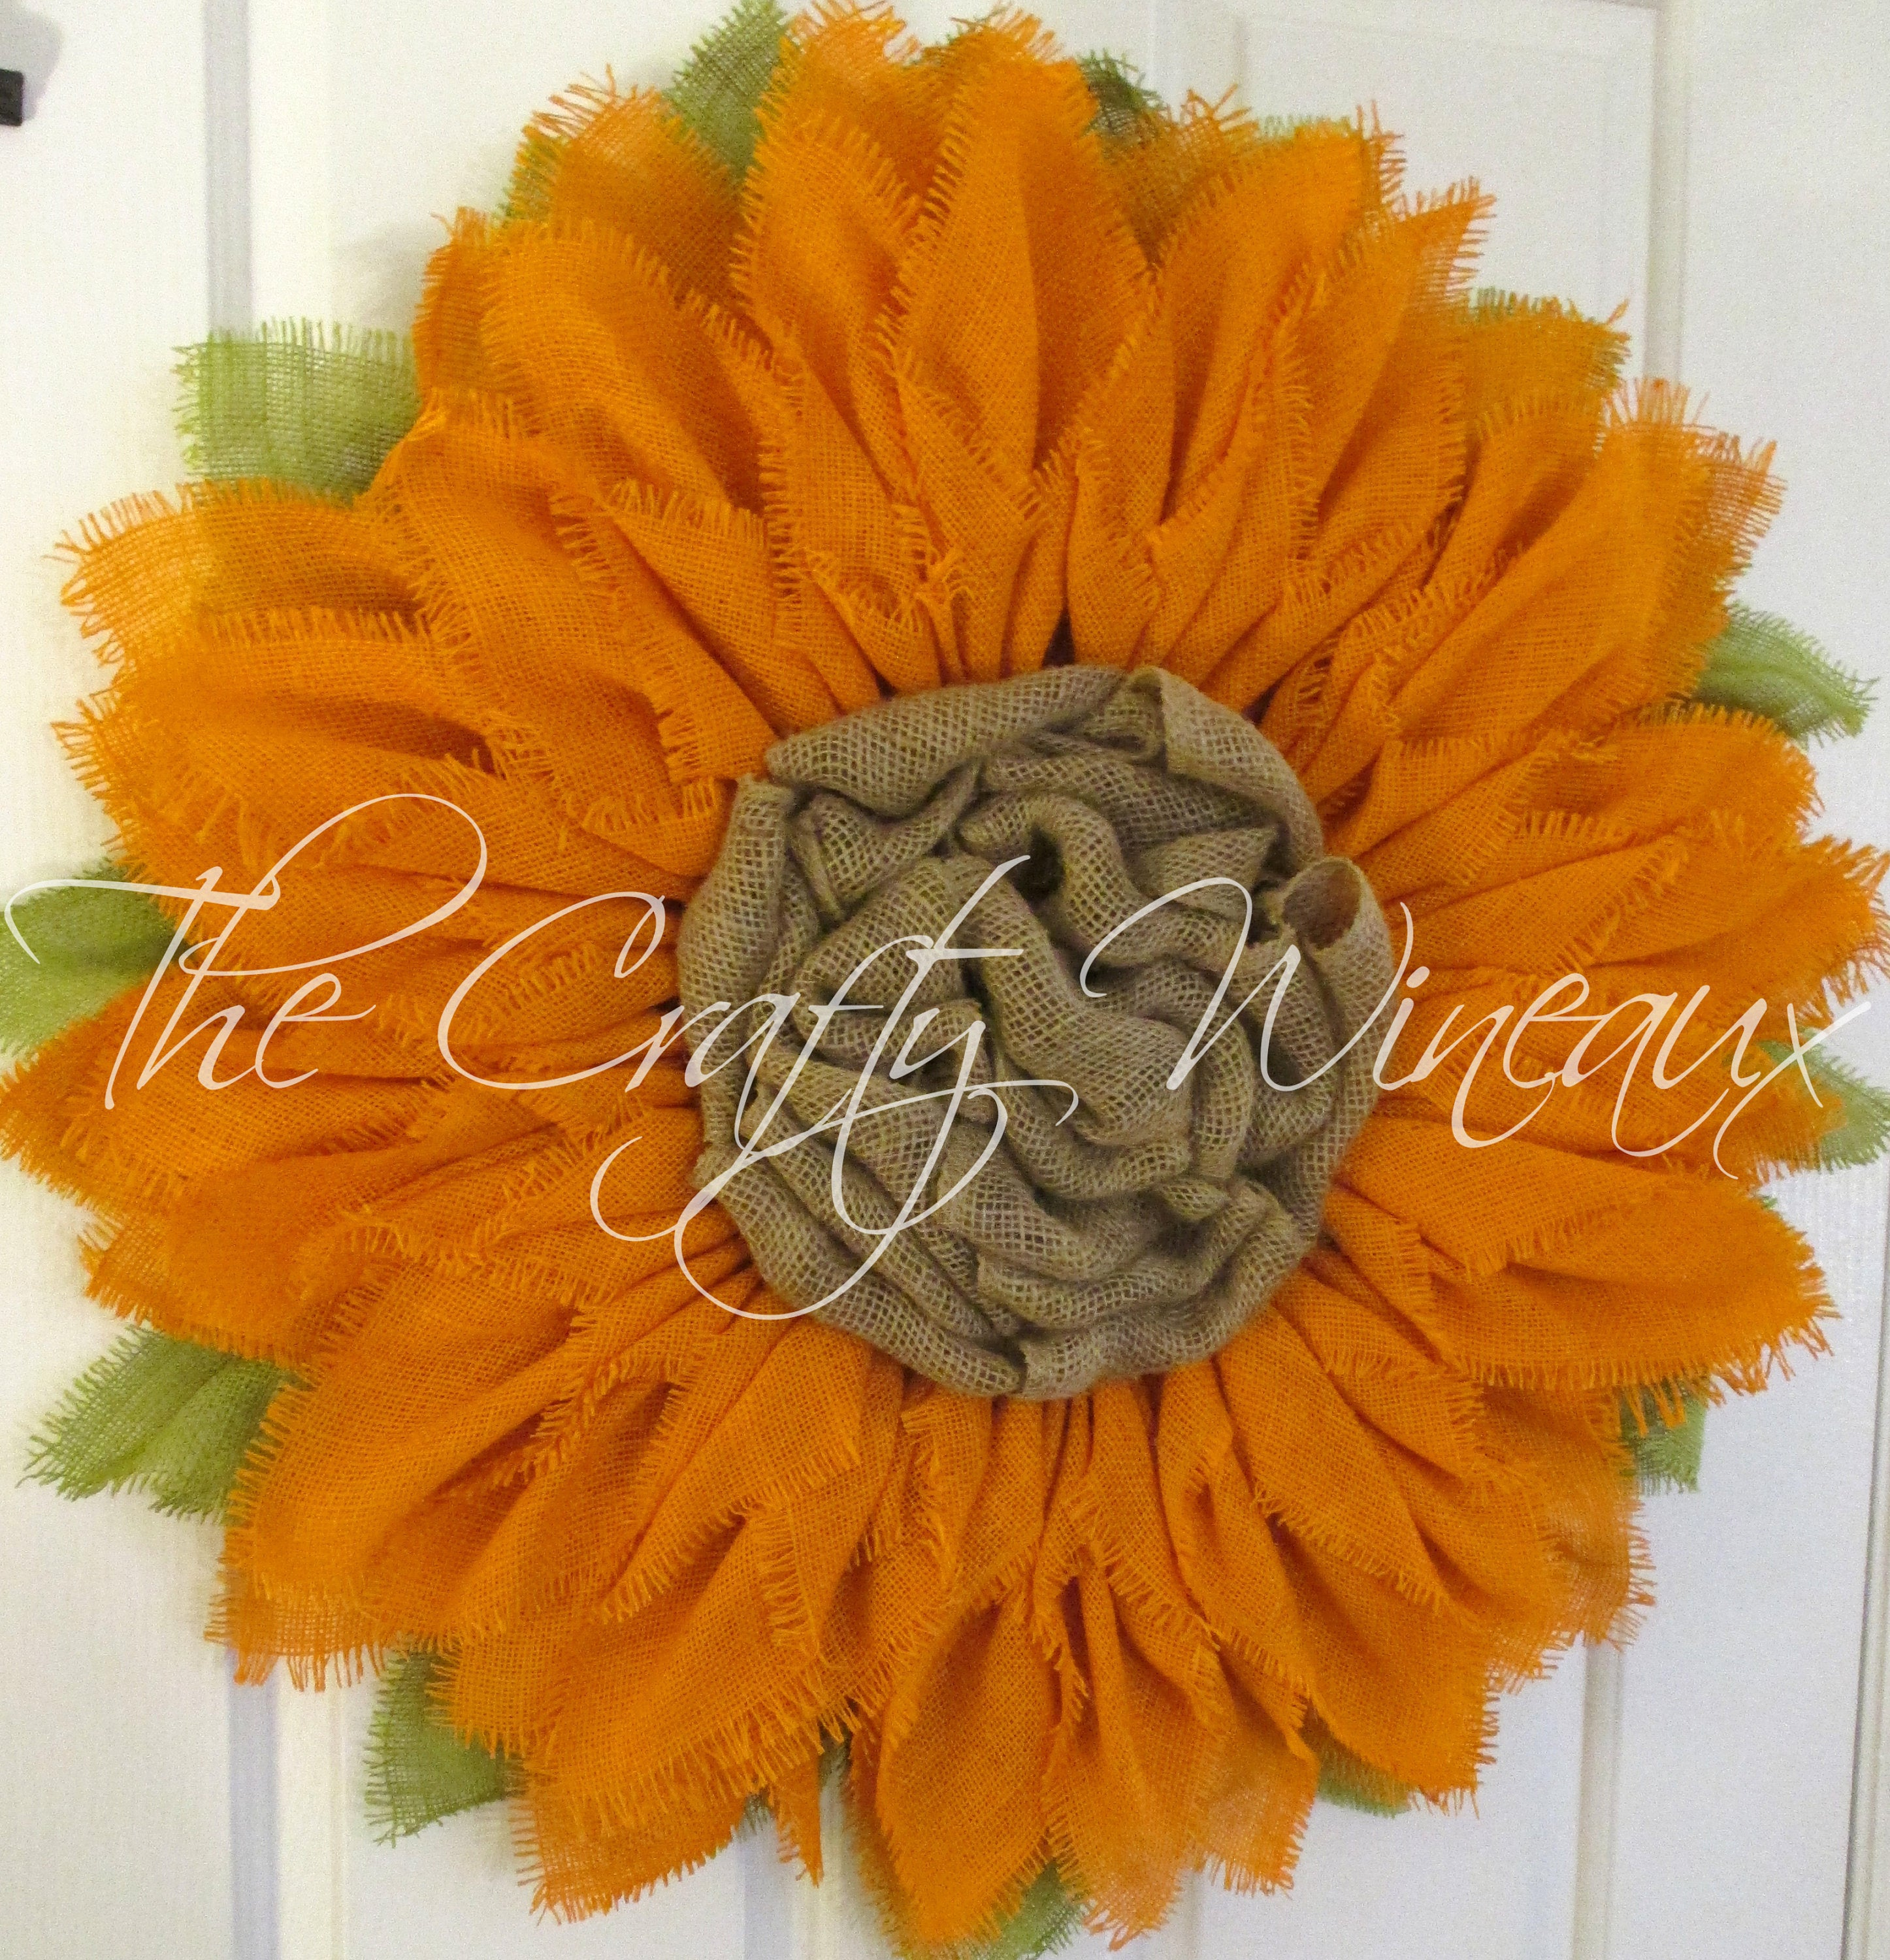 Free Shipping Extra Thick Orange Sunflower Wreath